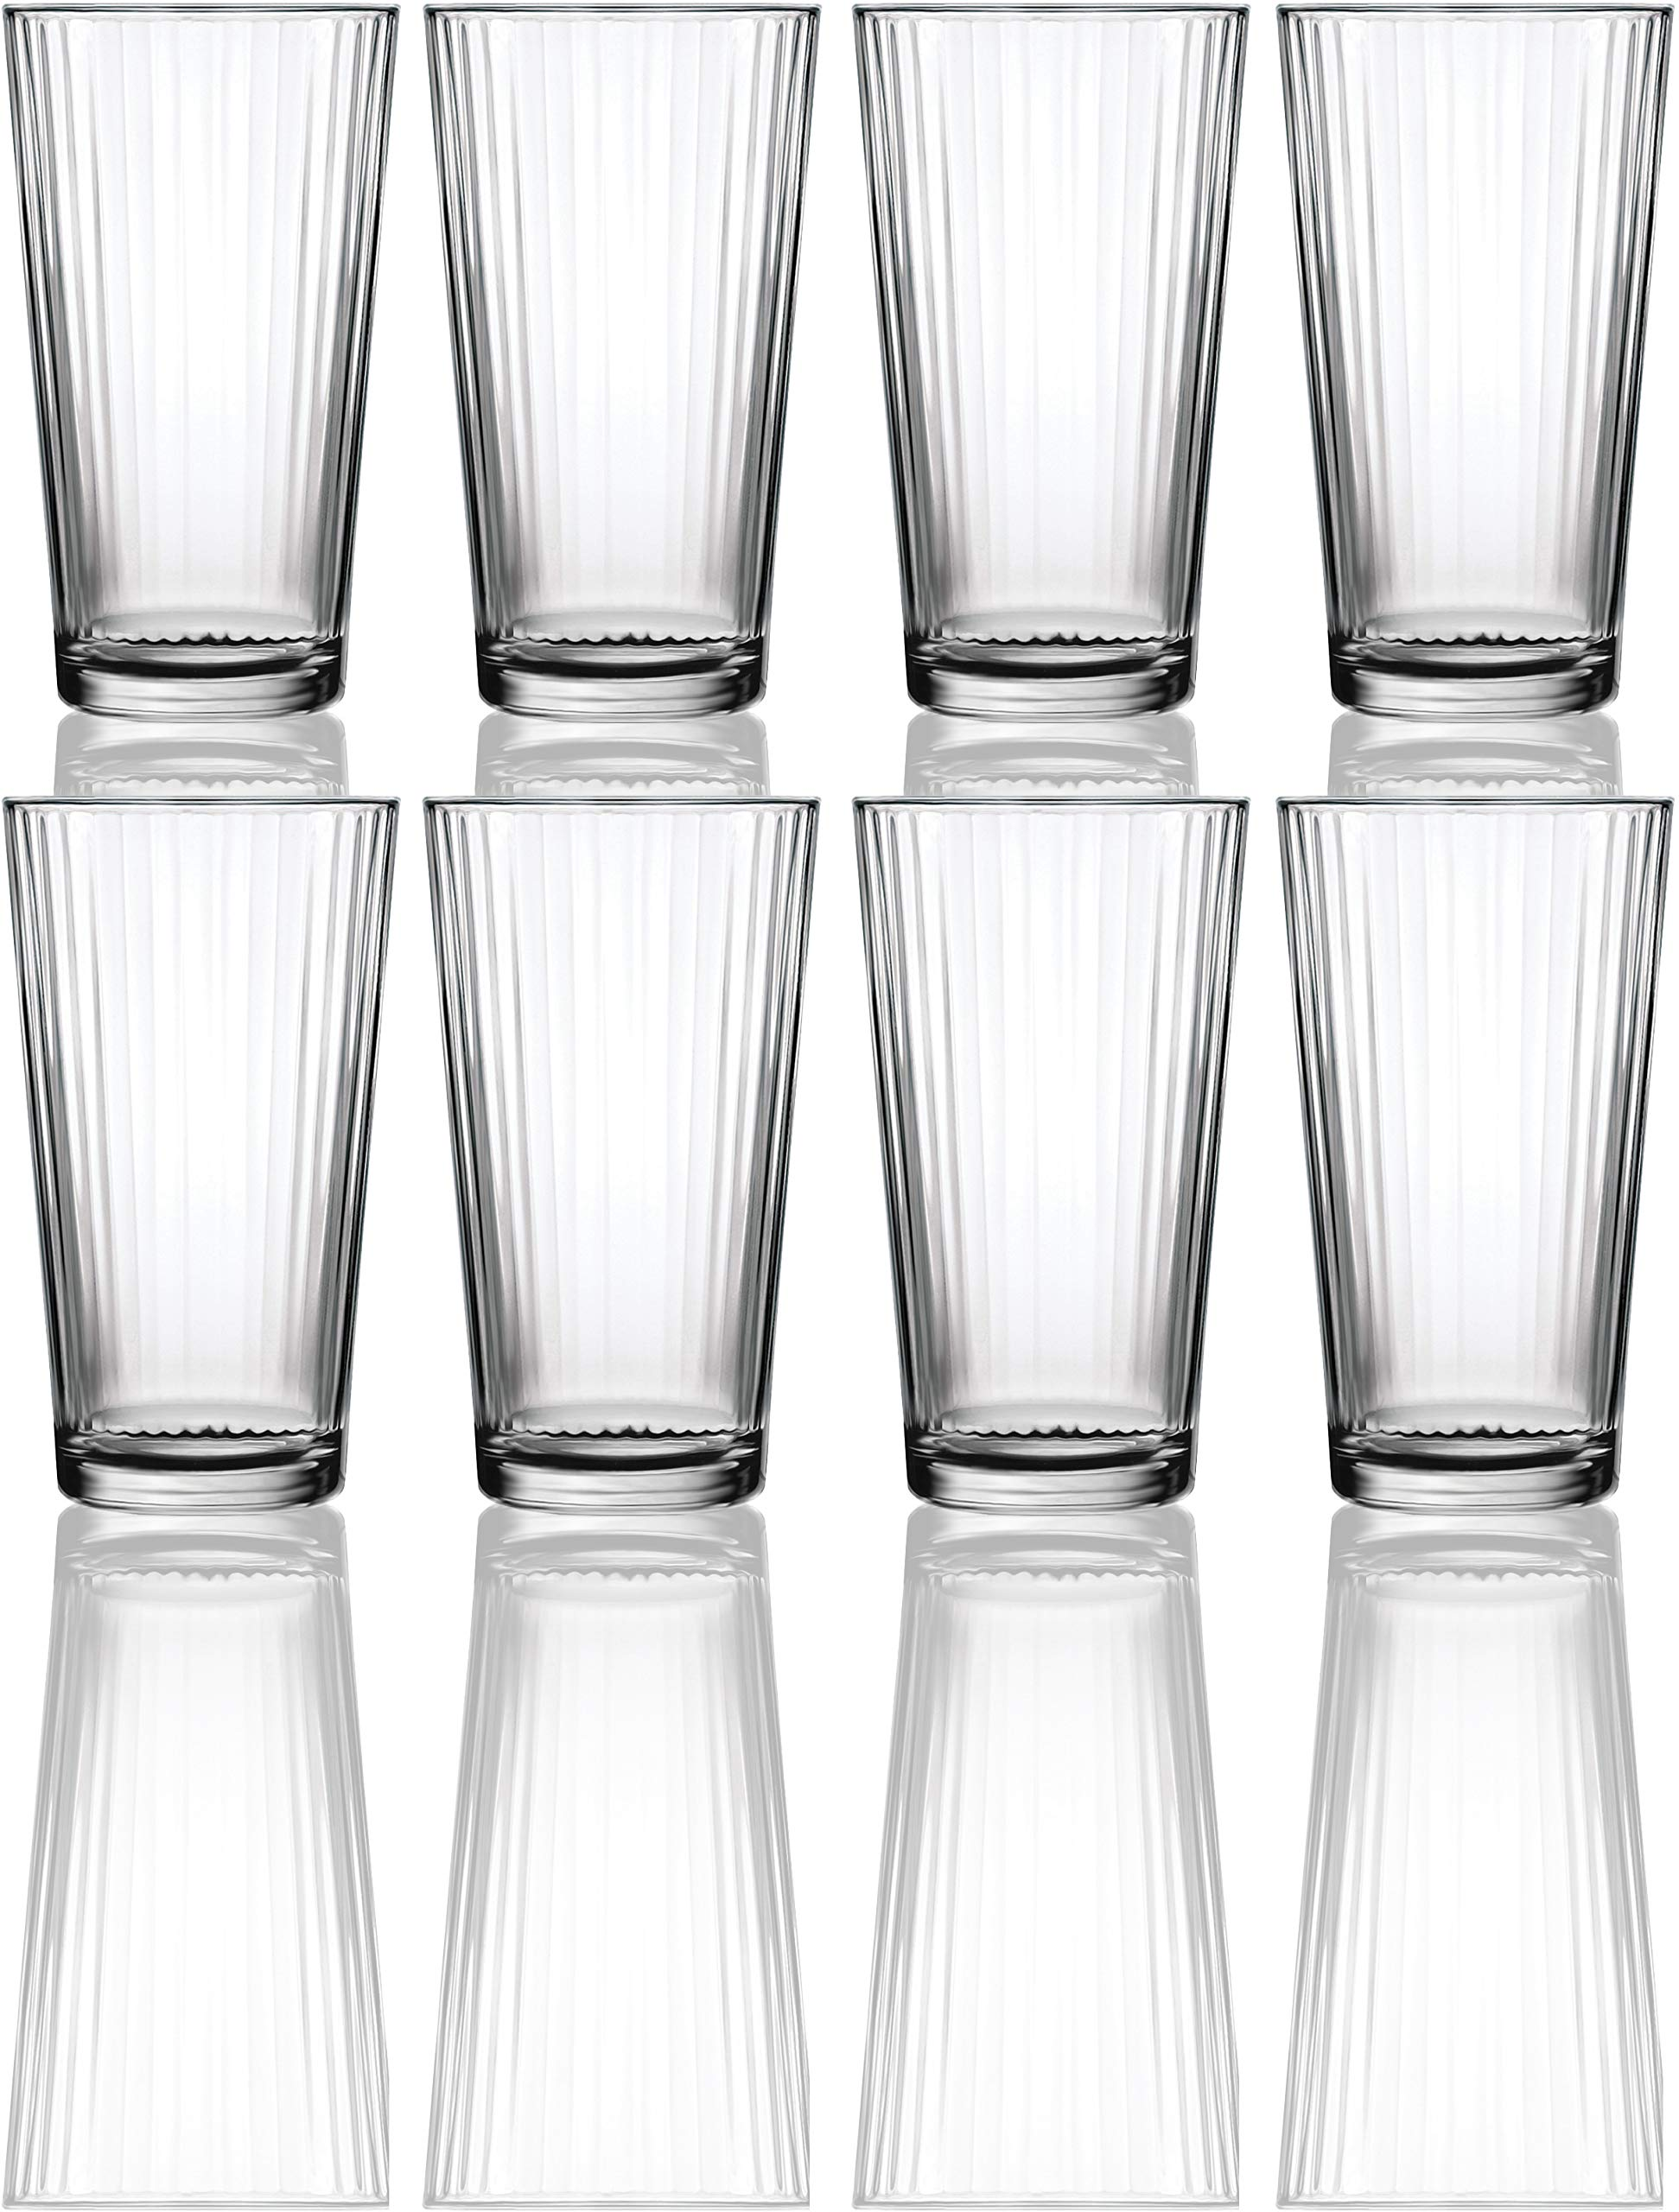 Circleware 40105 Hill Street Set of 8 Heavy Base Highball Tumbler Drinking Glasses, 15.75 oz Beverage Cups for Water, Juice, Milk, Beer, Ice Tea and Farmhouse Decor 8pc Spectrum